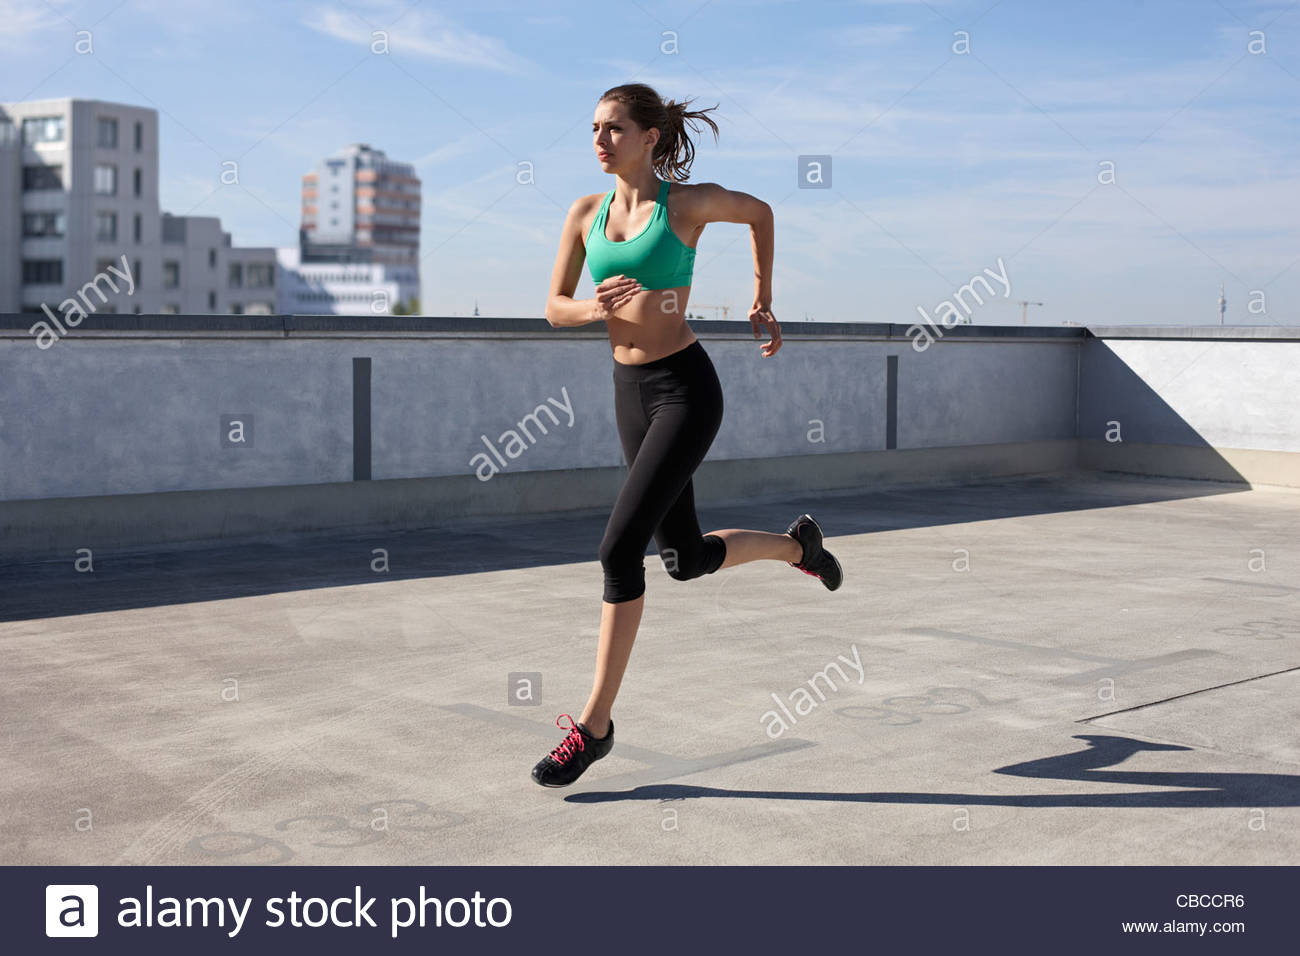 Woman jogging on rooftop - Stock Image